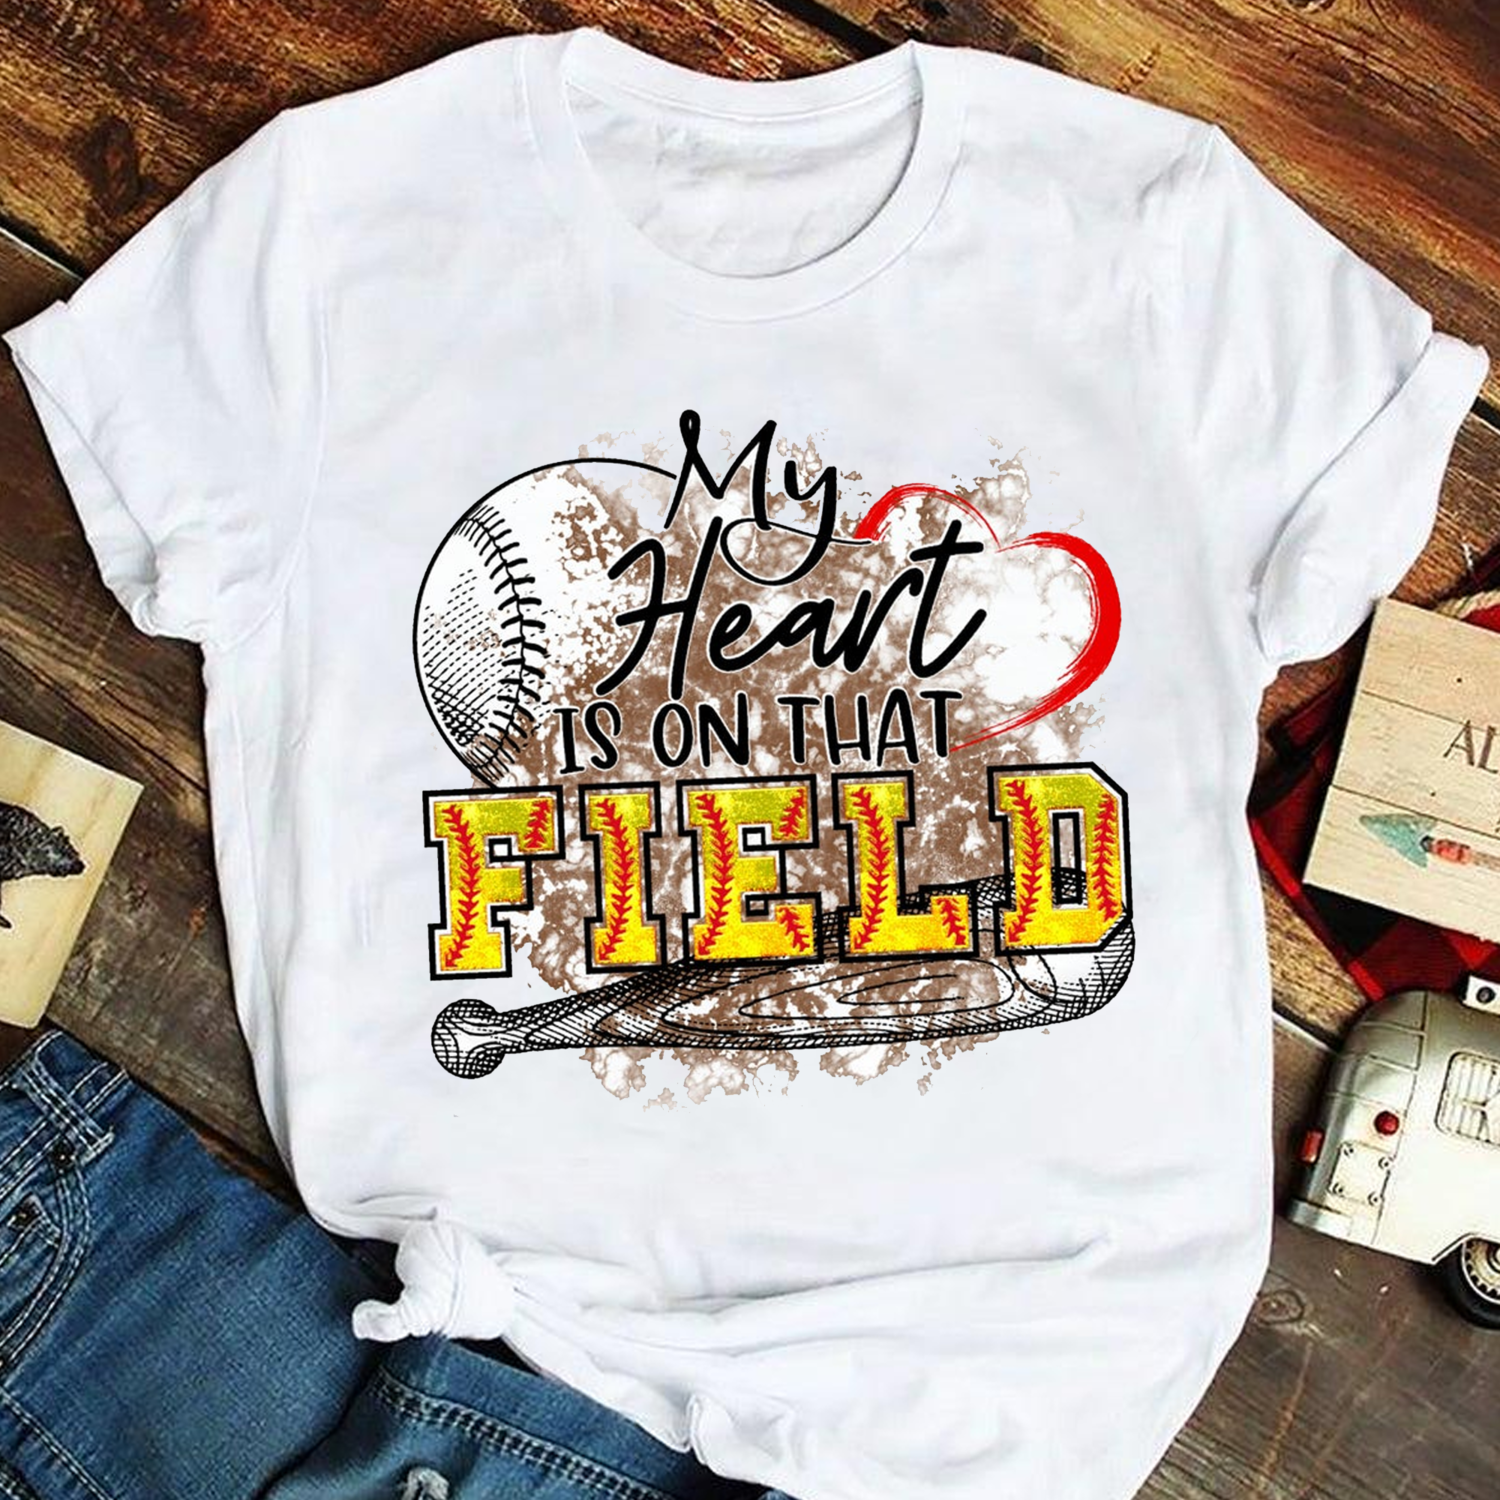 My heart is on that Field Softball T shirt, Softball Lover T shirt, Mom Softball Shirt, Gift for Mom shirt, Mother's Day Gift Trending Unisex Hoodies Sweatshirt V neck Kid T Shirt